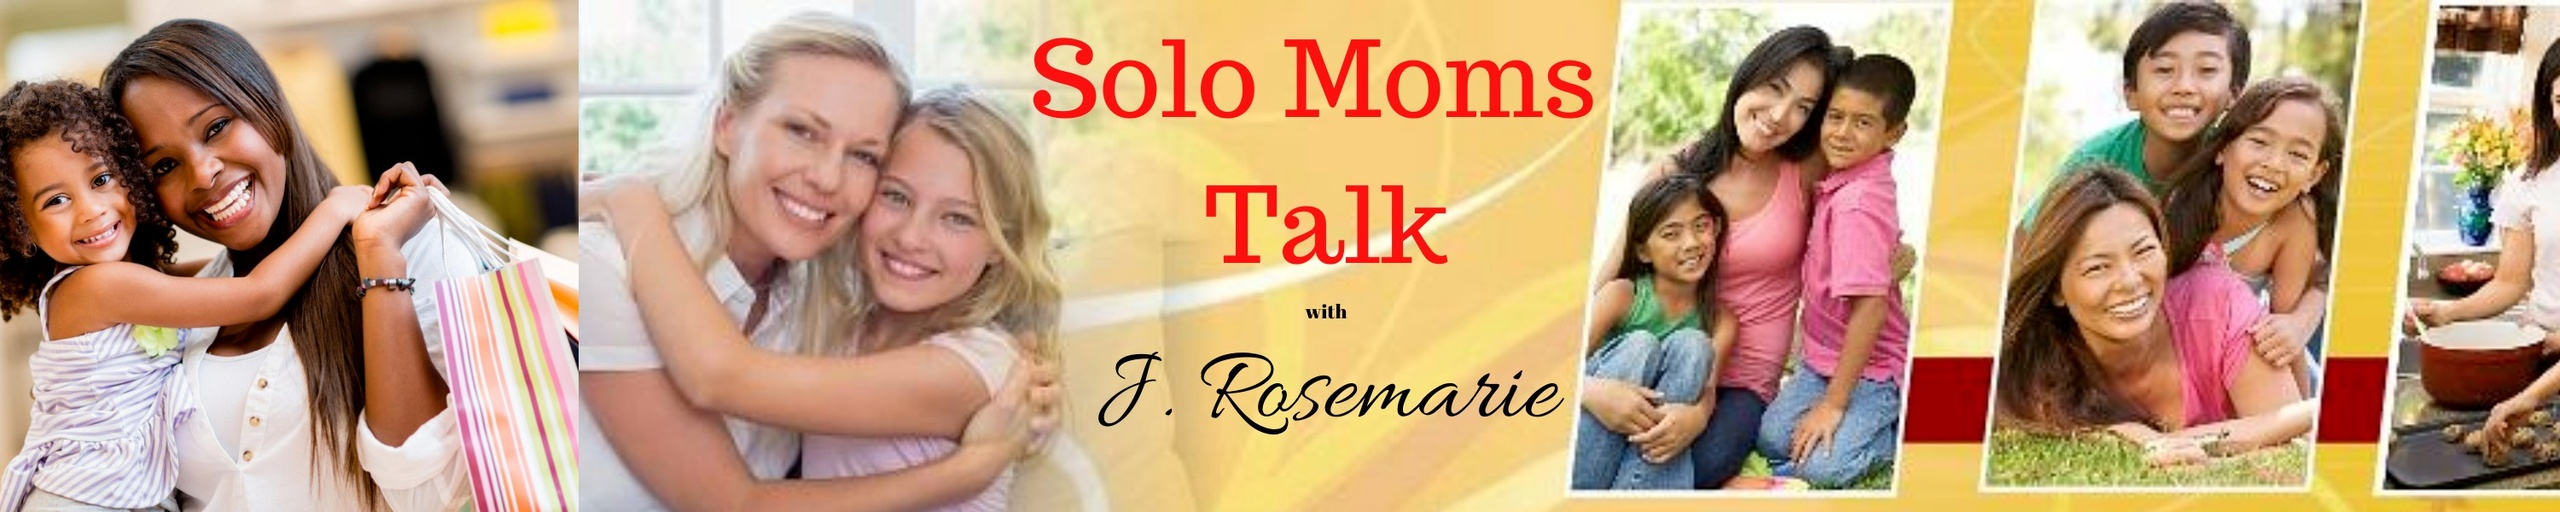 solo-moms-talk